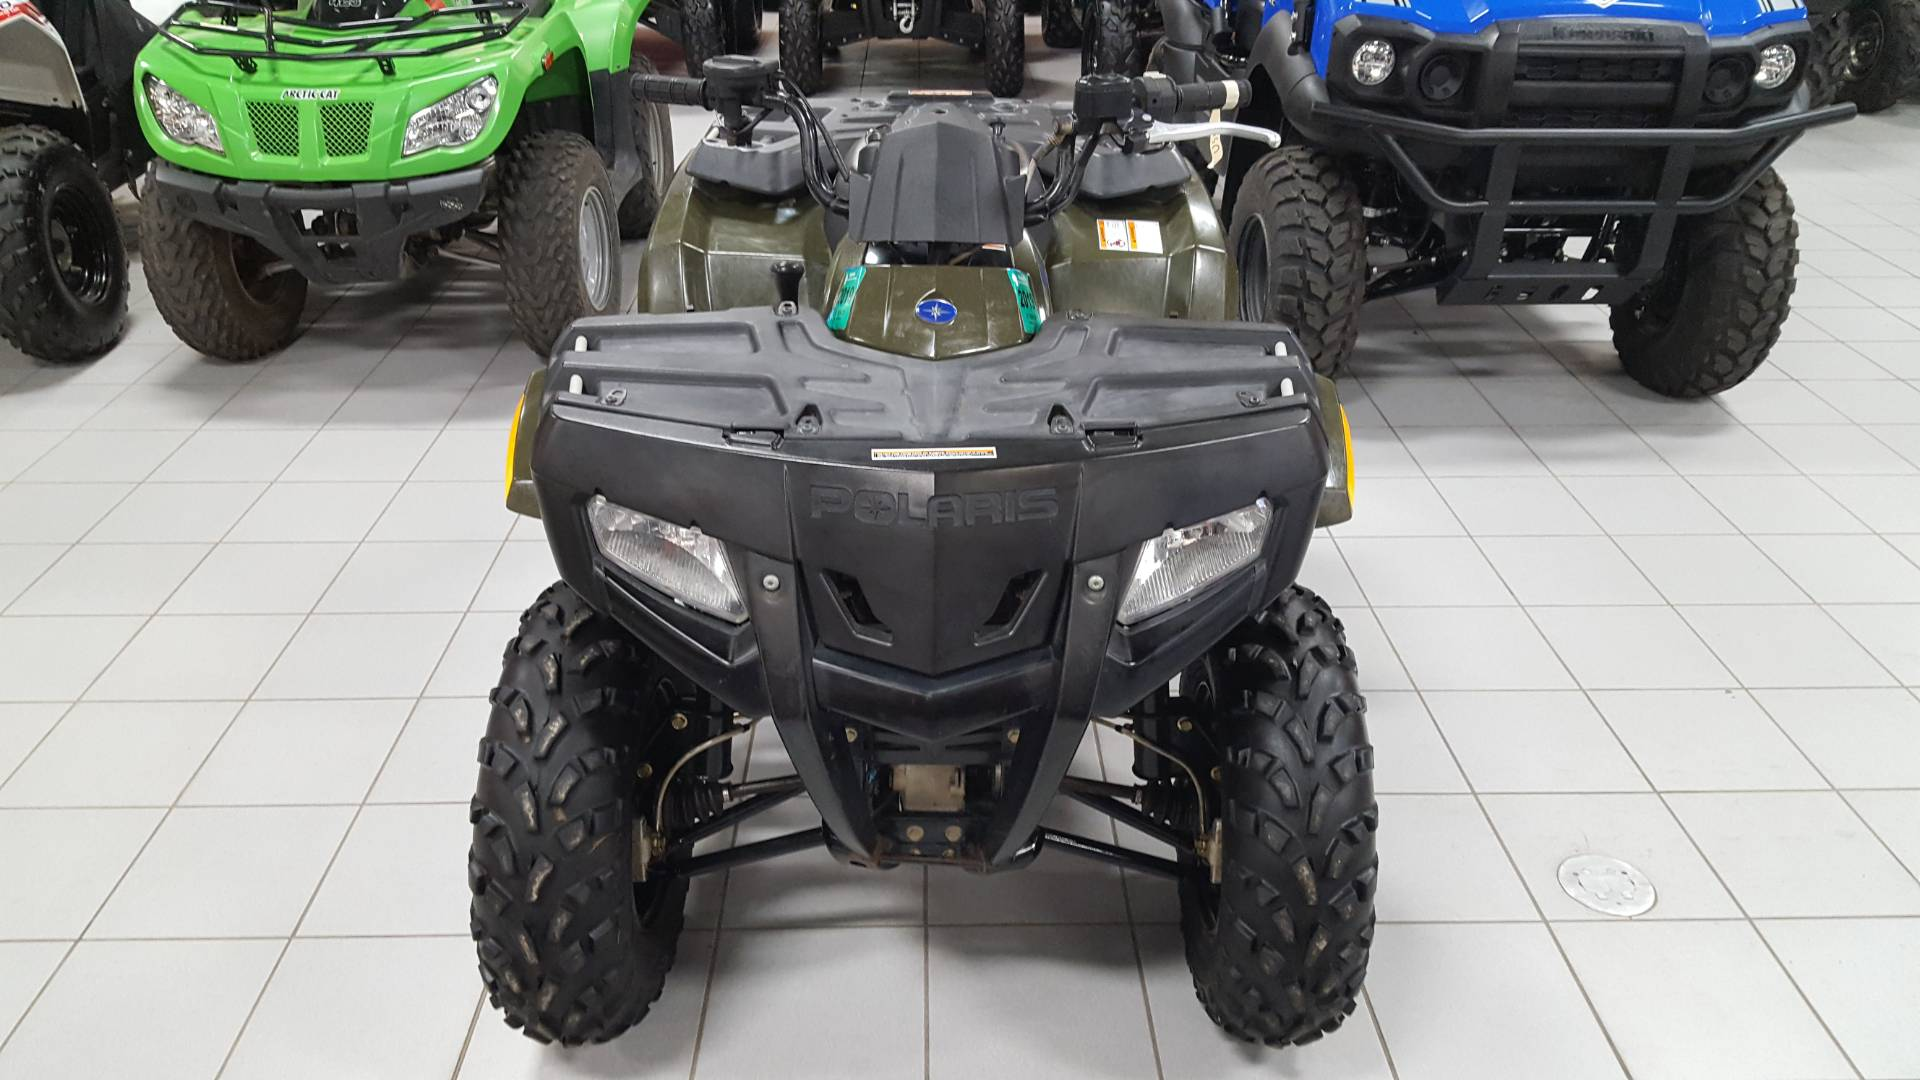 2009 Polaris Sportsman 400 H.O. 4